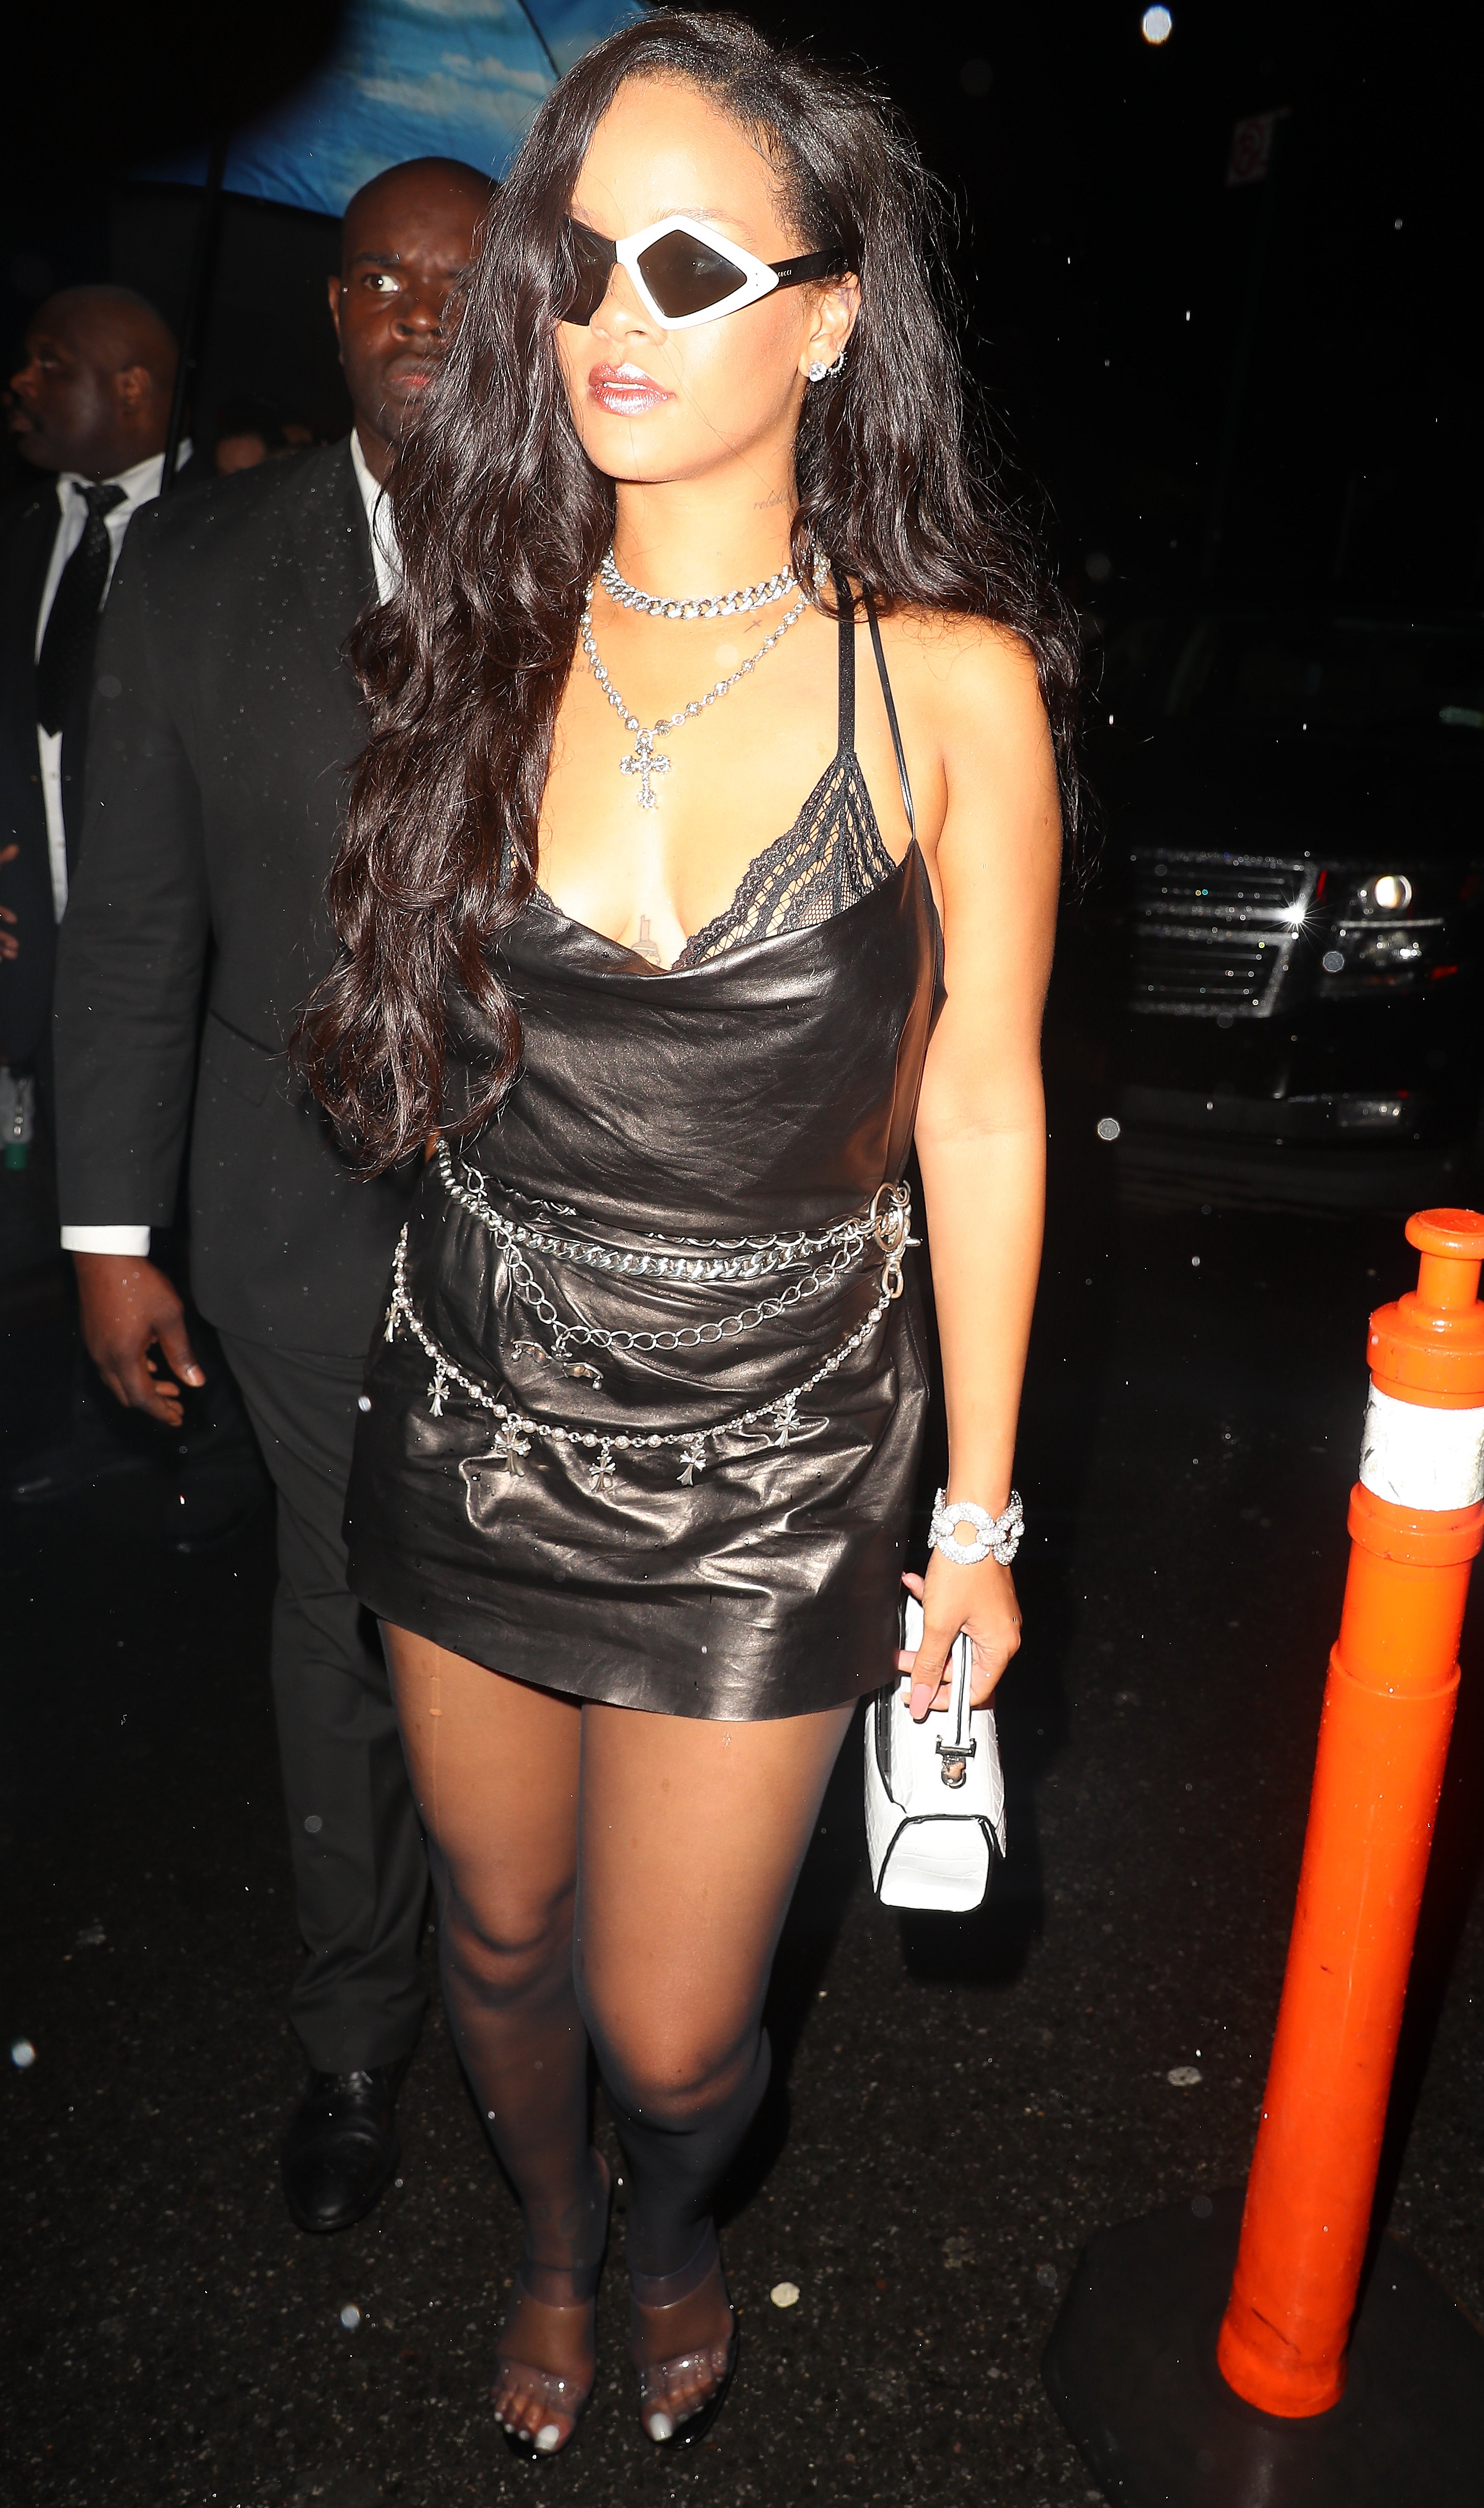 Rihanna Wears Gucci To  1 Oak After Party For Savage x Fenty Lingerie Line